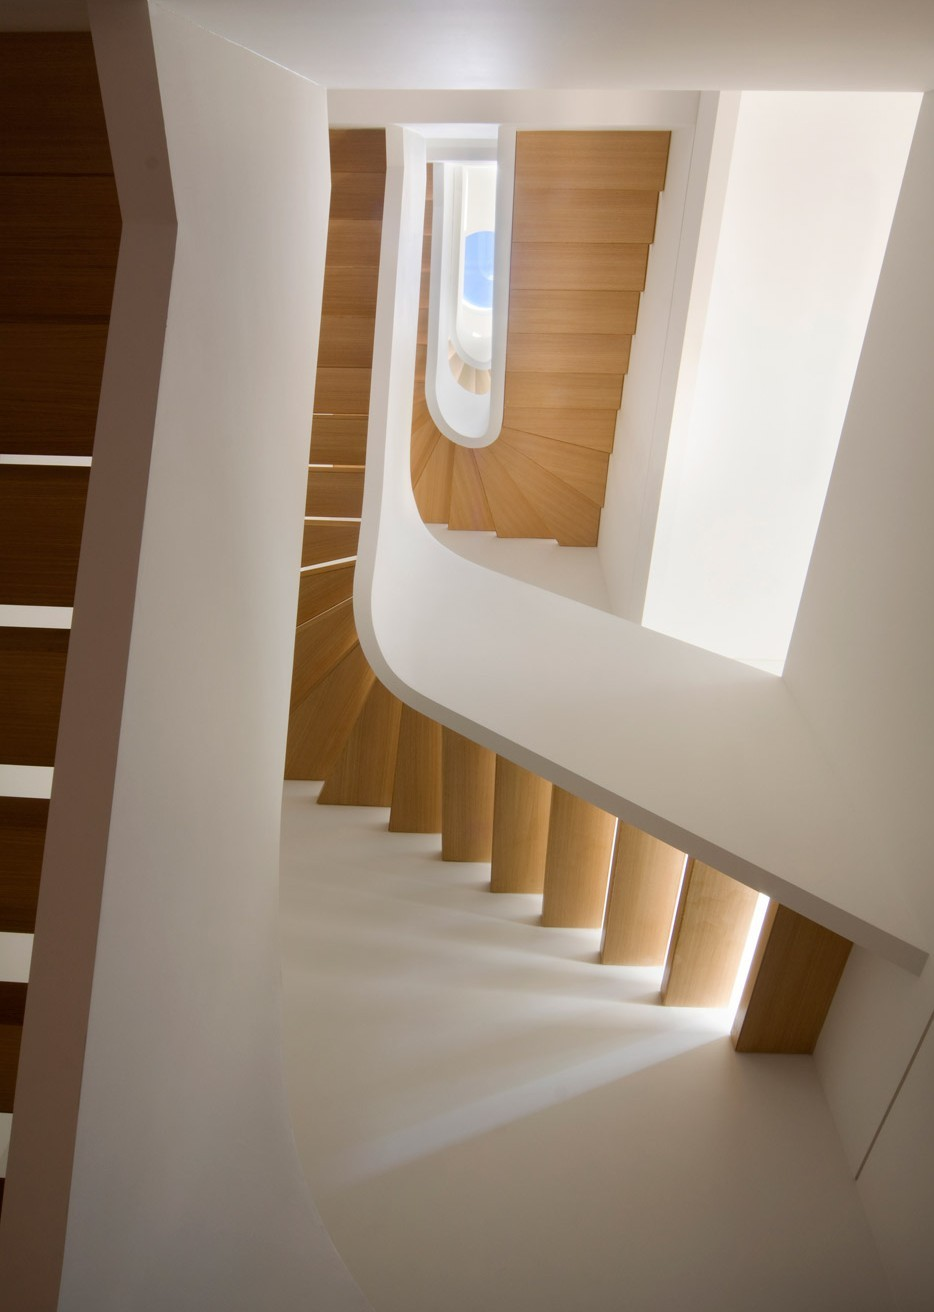 The White Snake by Space4architecture